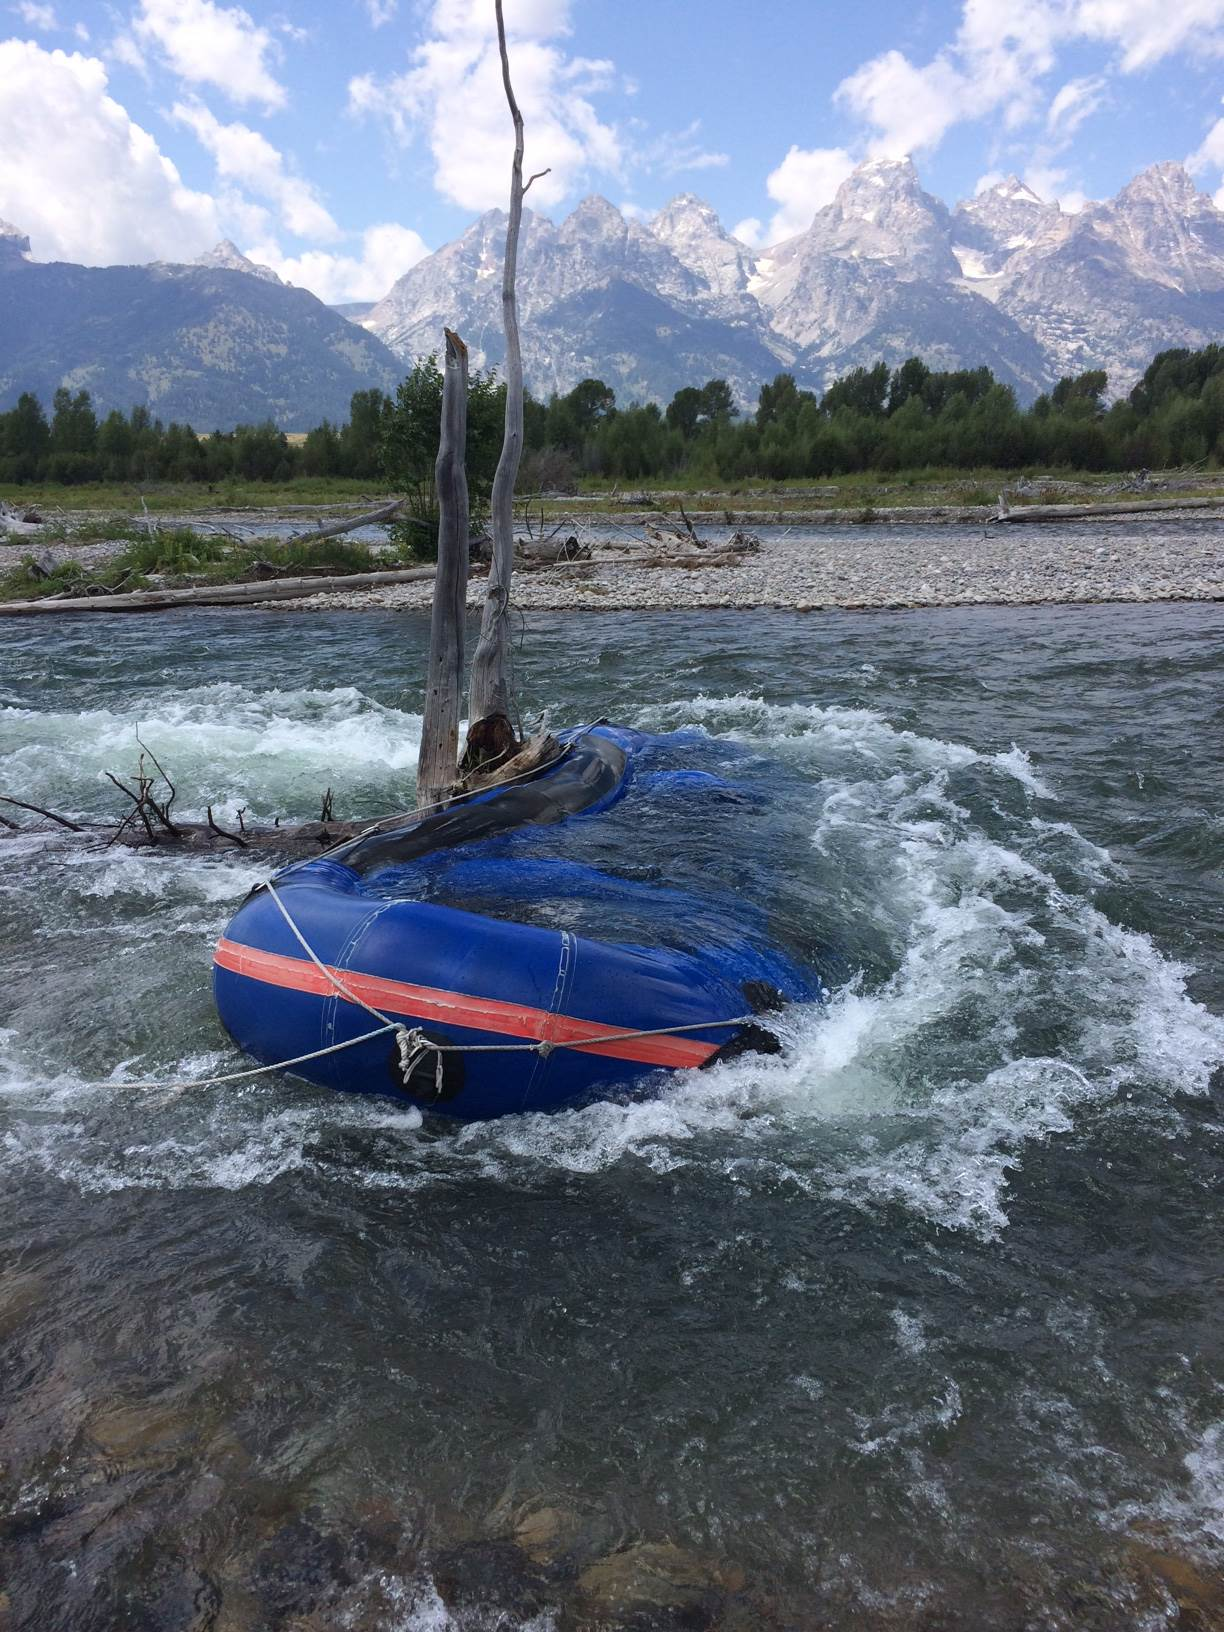 Rangers Caution Visitors Floating The Snake River Between